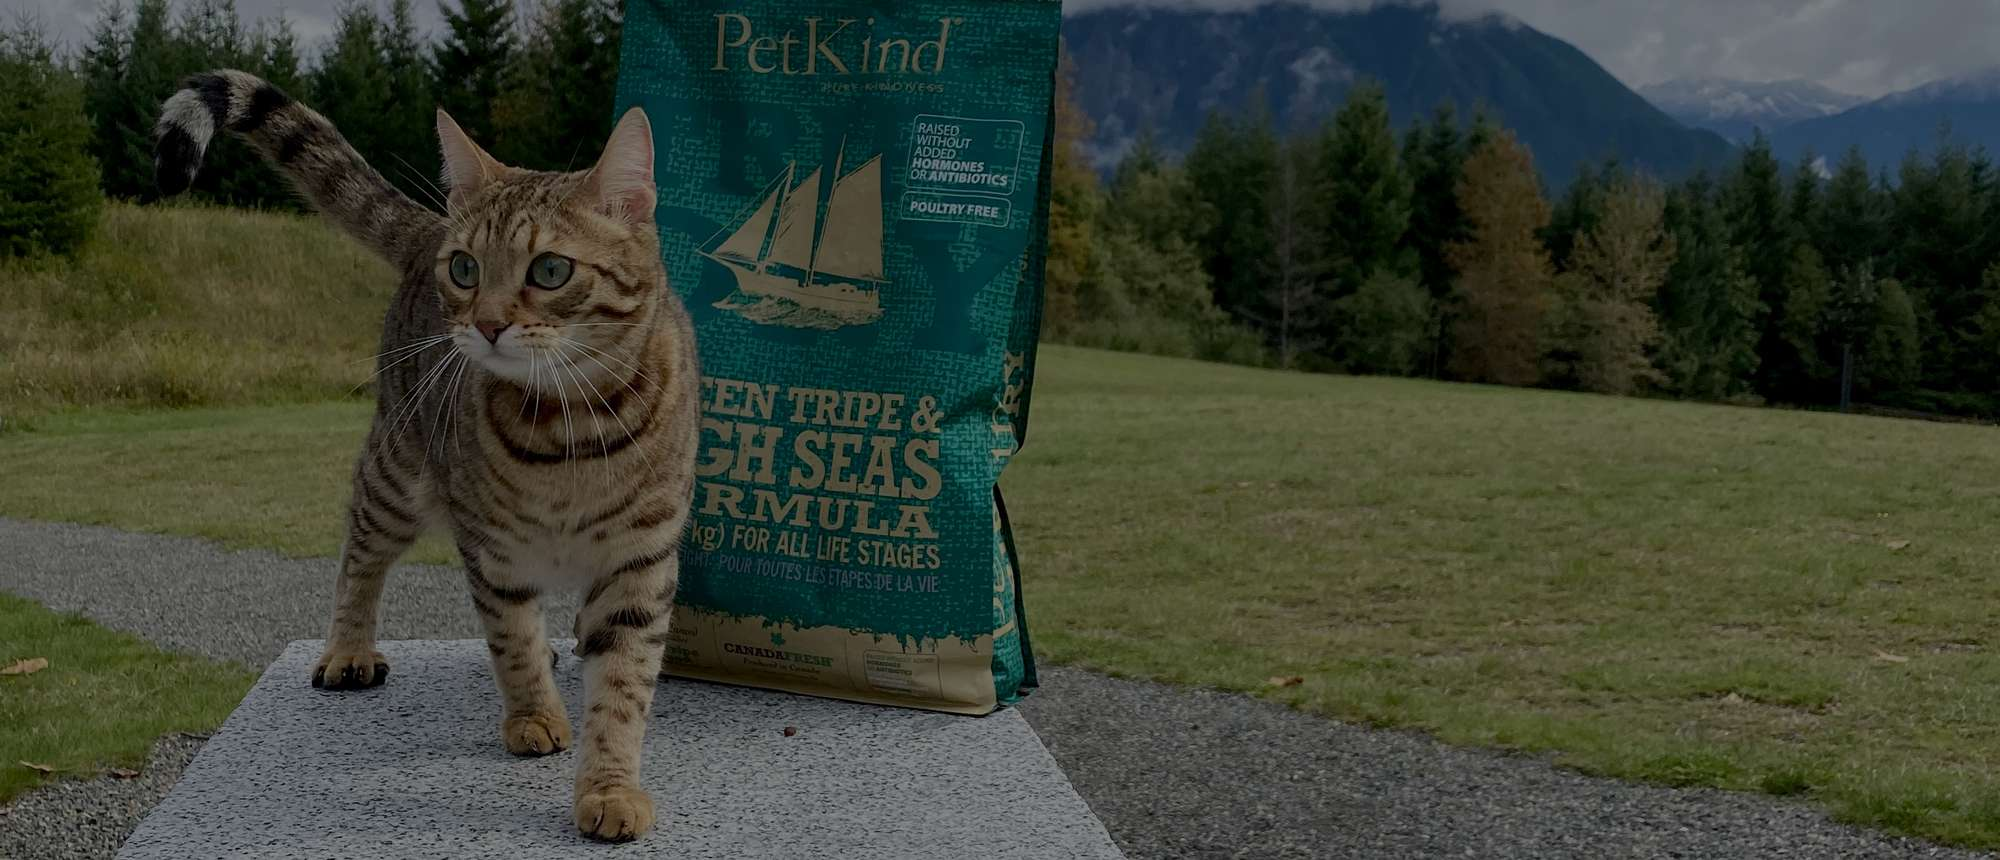 Bengal Cat outdoors with an 11 lb bag of Tripe Dry Green Tripe and High Seas formula.